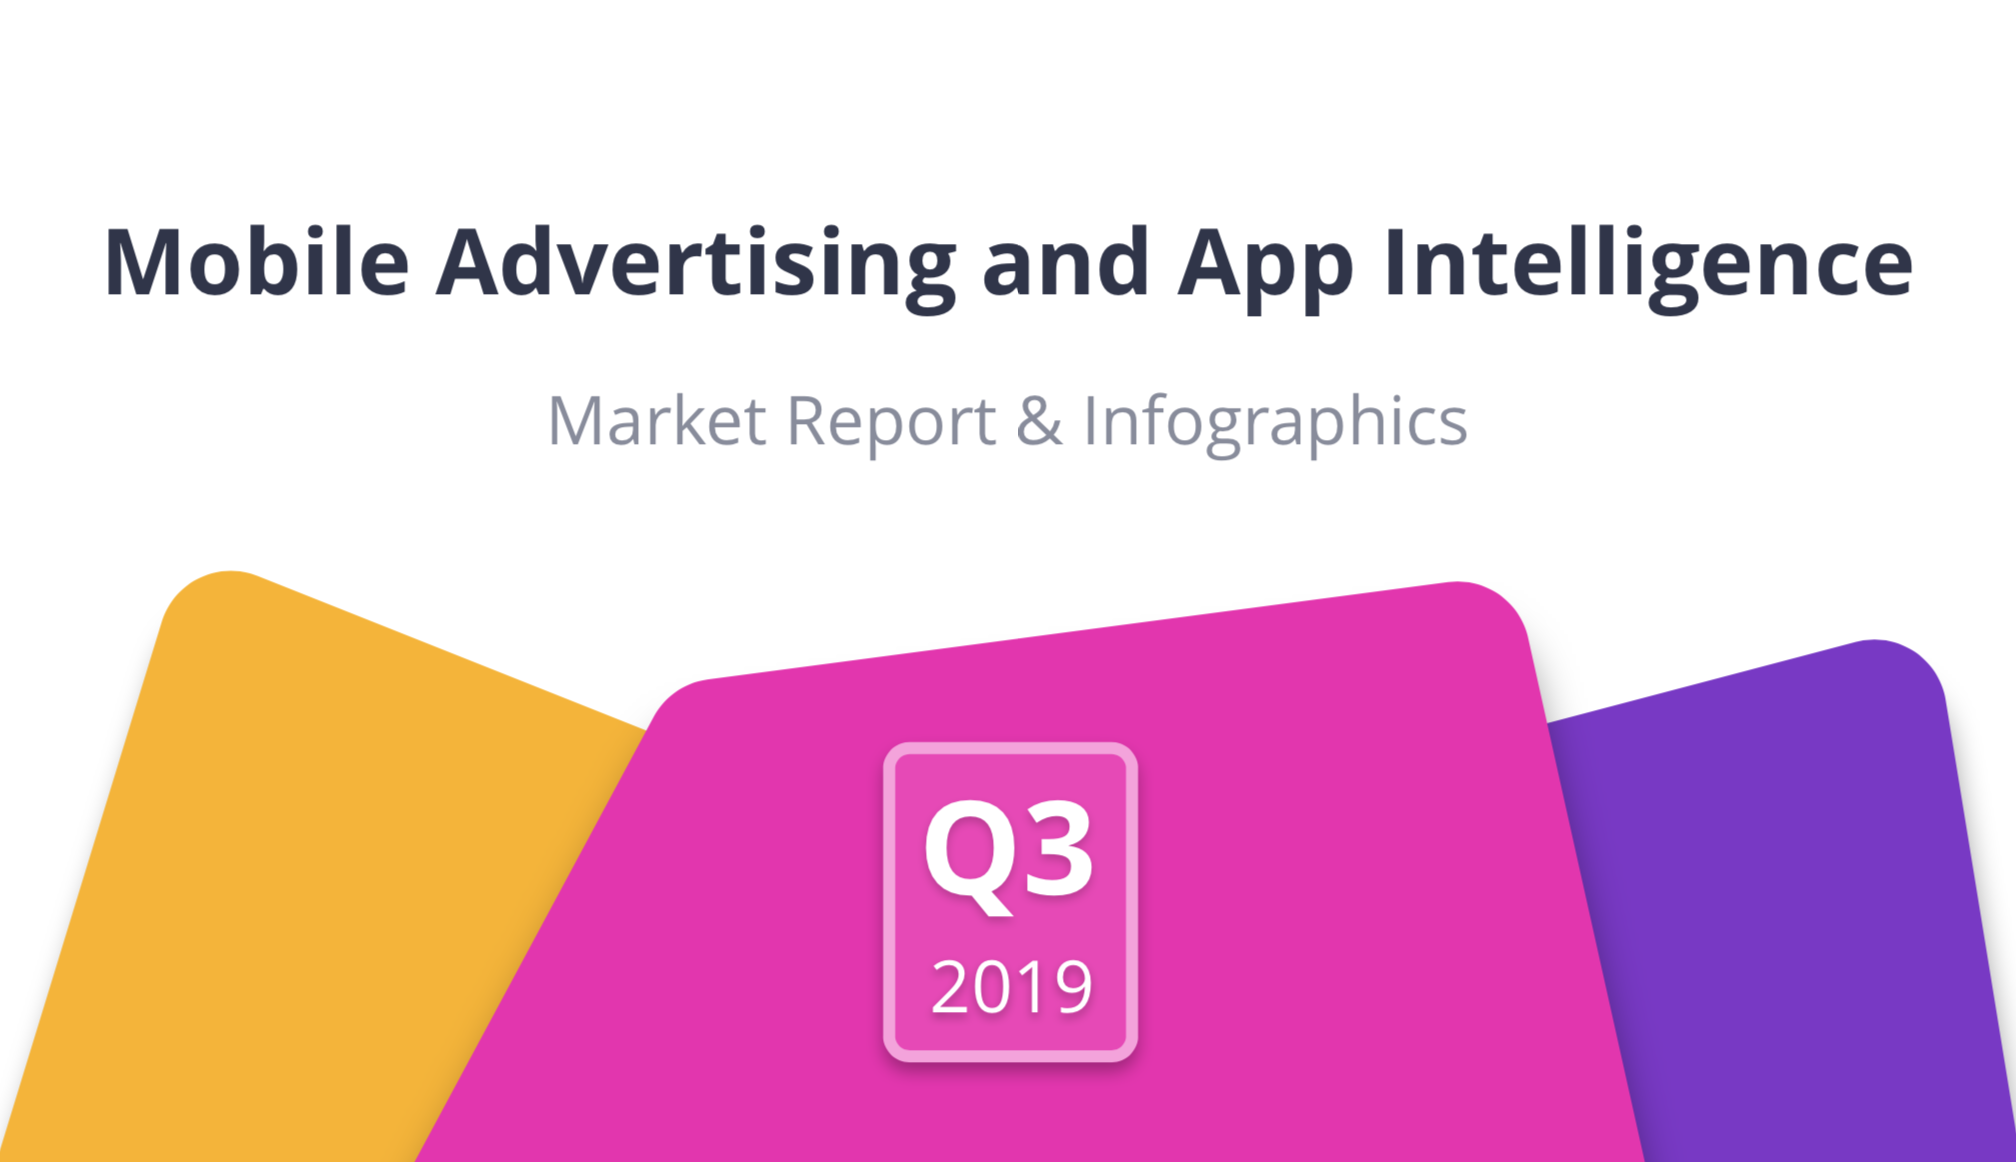 State of the App Market in Q3 2019 - Stats & Infographics